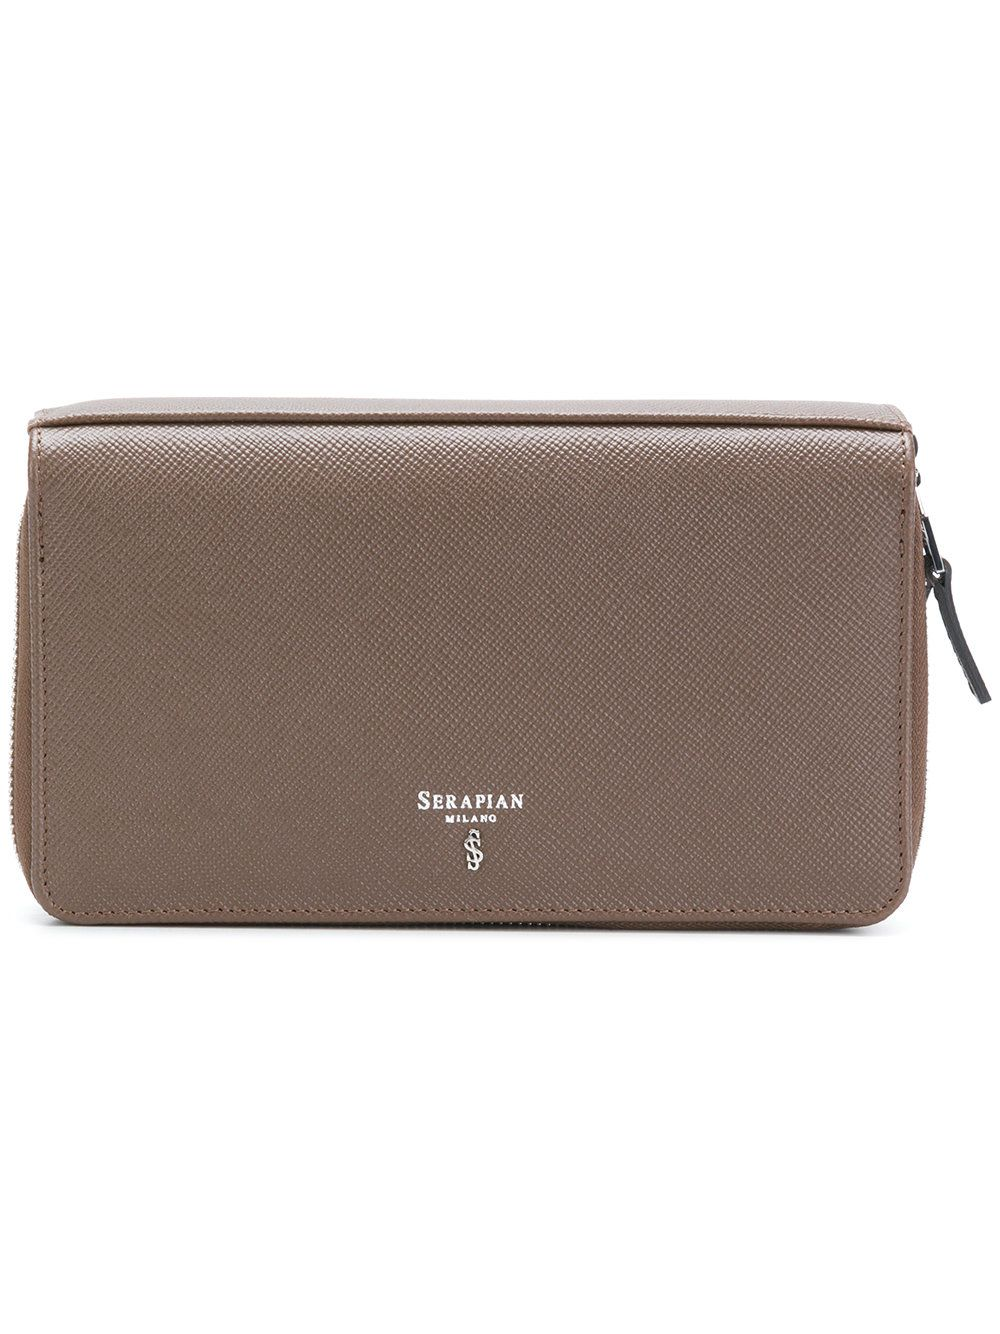 583fd3d3383 SERAPIAN . #serapian # | Serapian | Zip around wallet, Wallet, Fashion